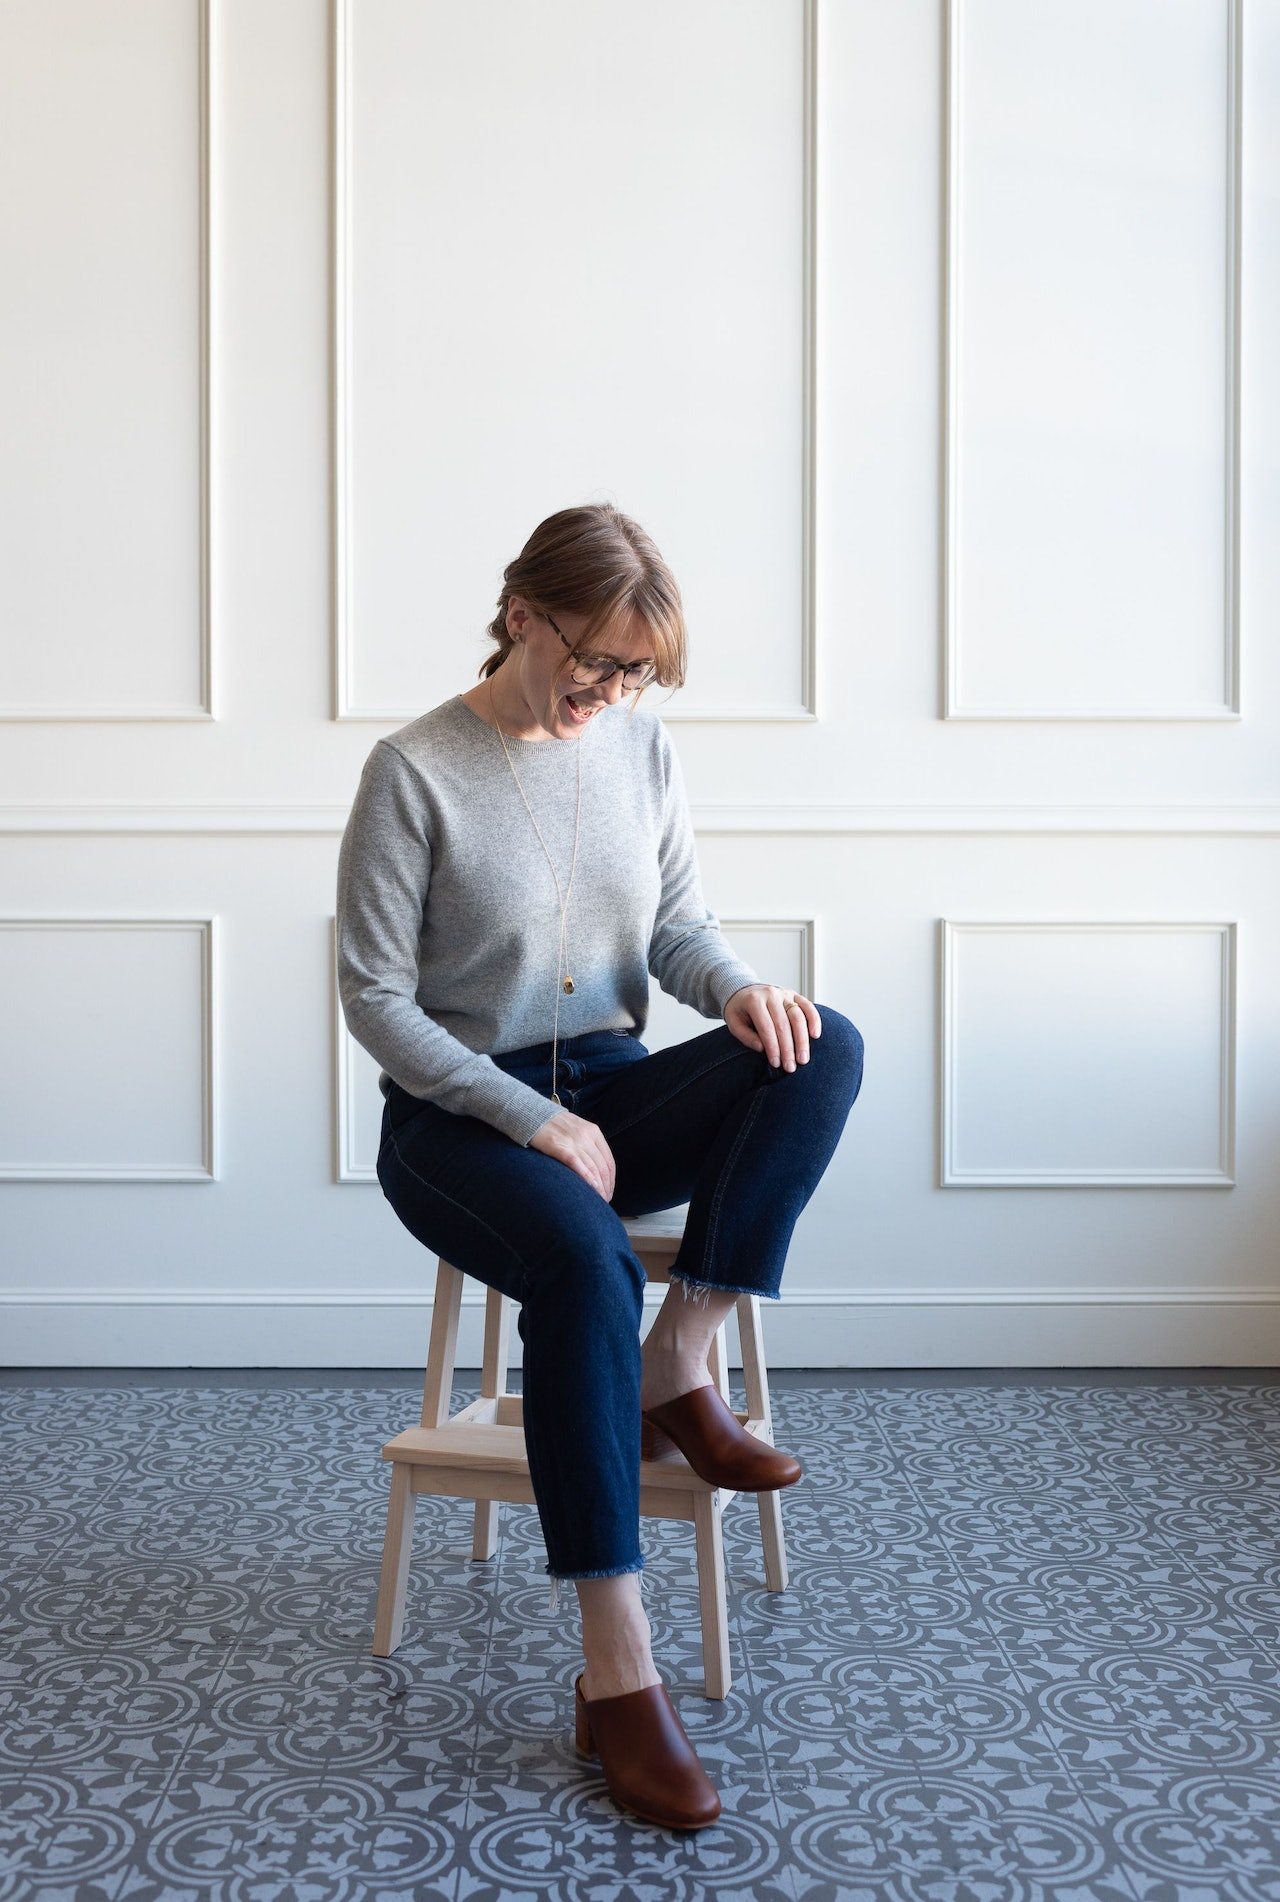 Fall 10x10 Day 2 Look - Everlane Cashmere Crew Sweater in Heather Grey by Conscious by Chloé